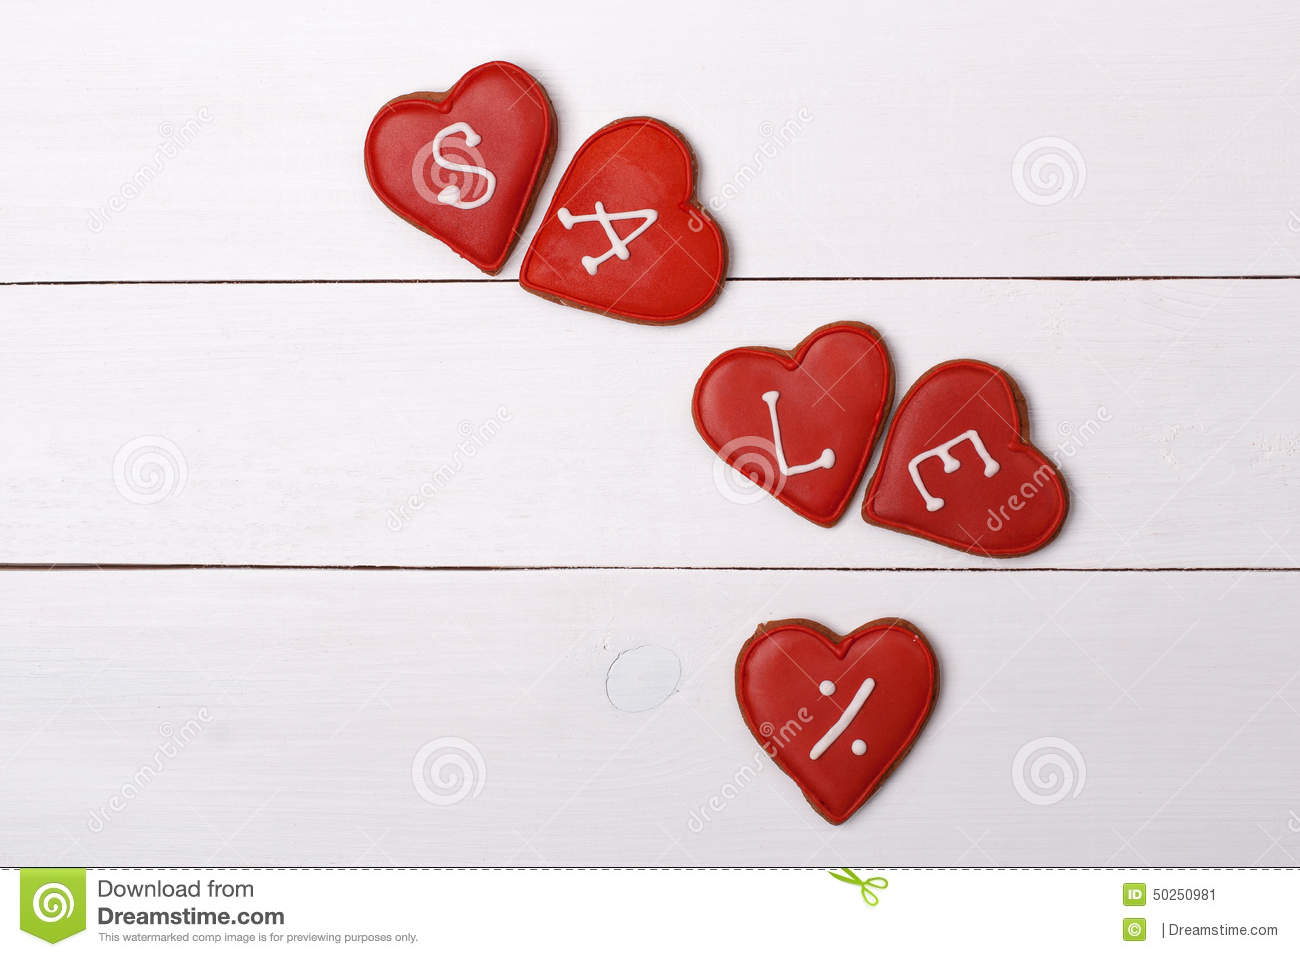 Sweet things for valentine 39 s day cookies sale persent for Cute stuff for sale